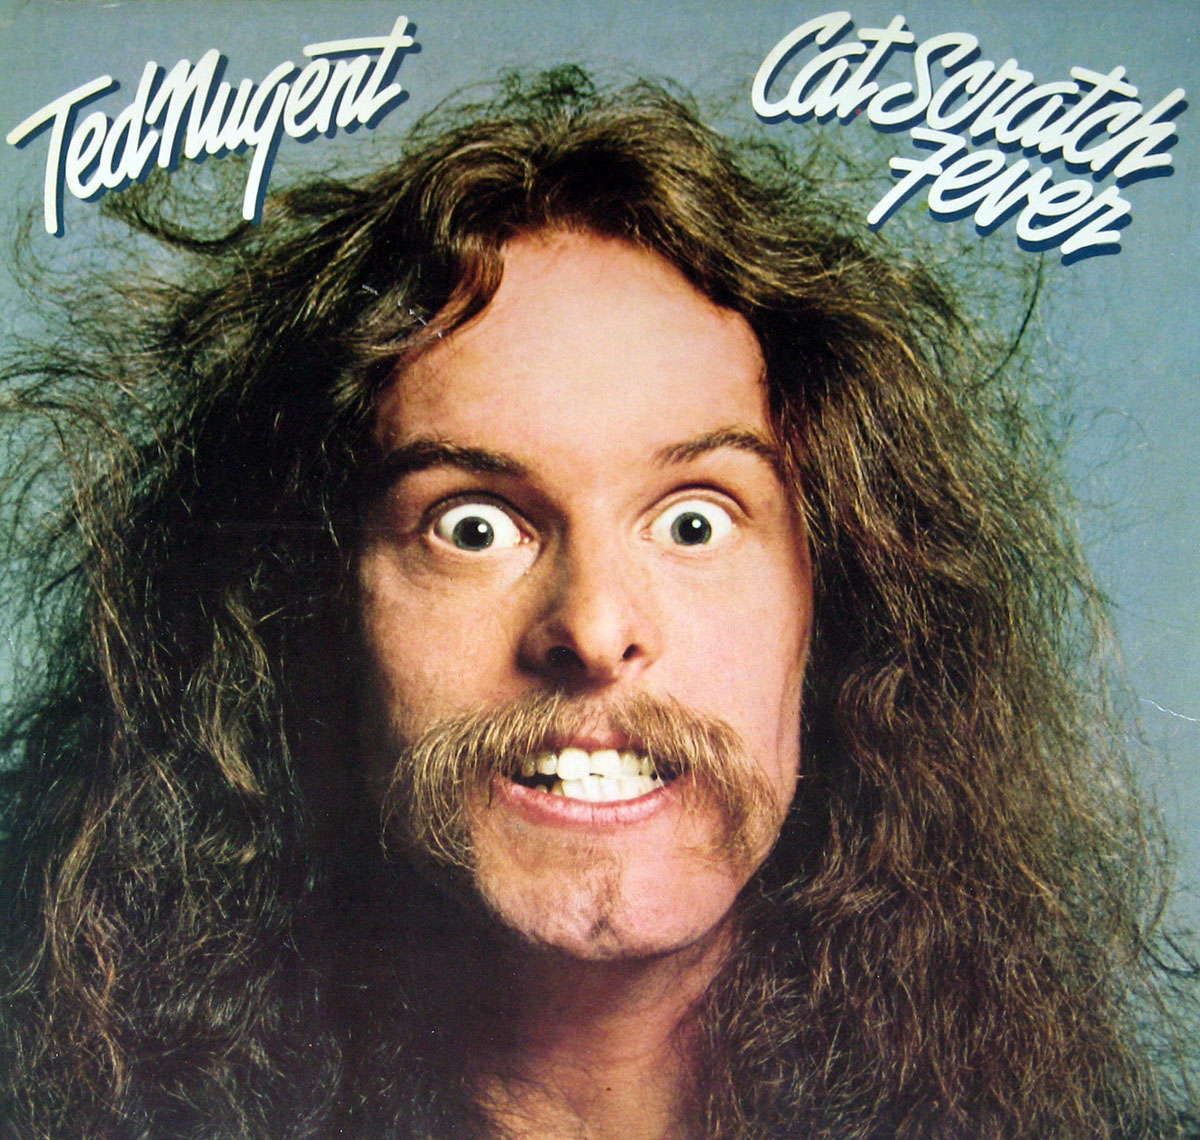 High Resolution Photos of ted nugent cat scratch fever